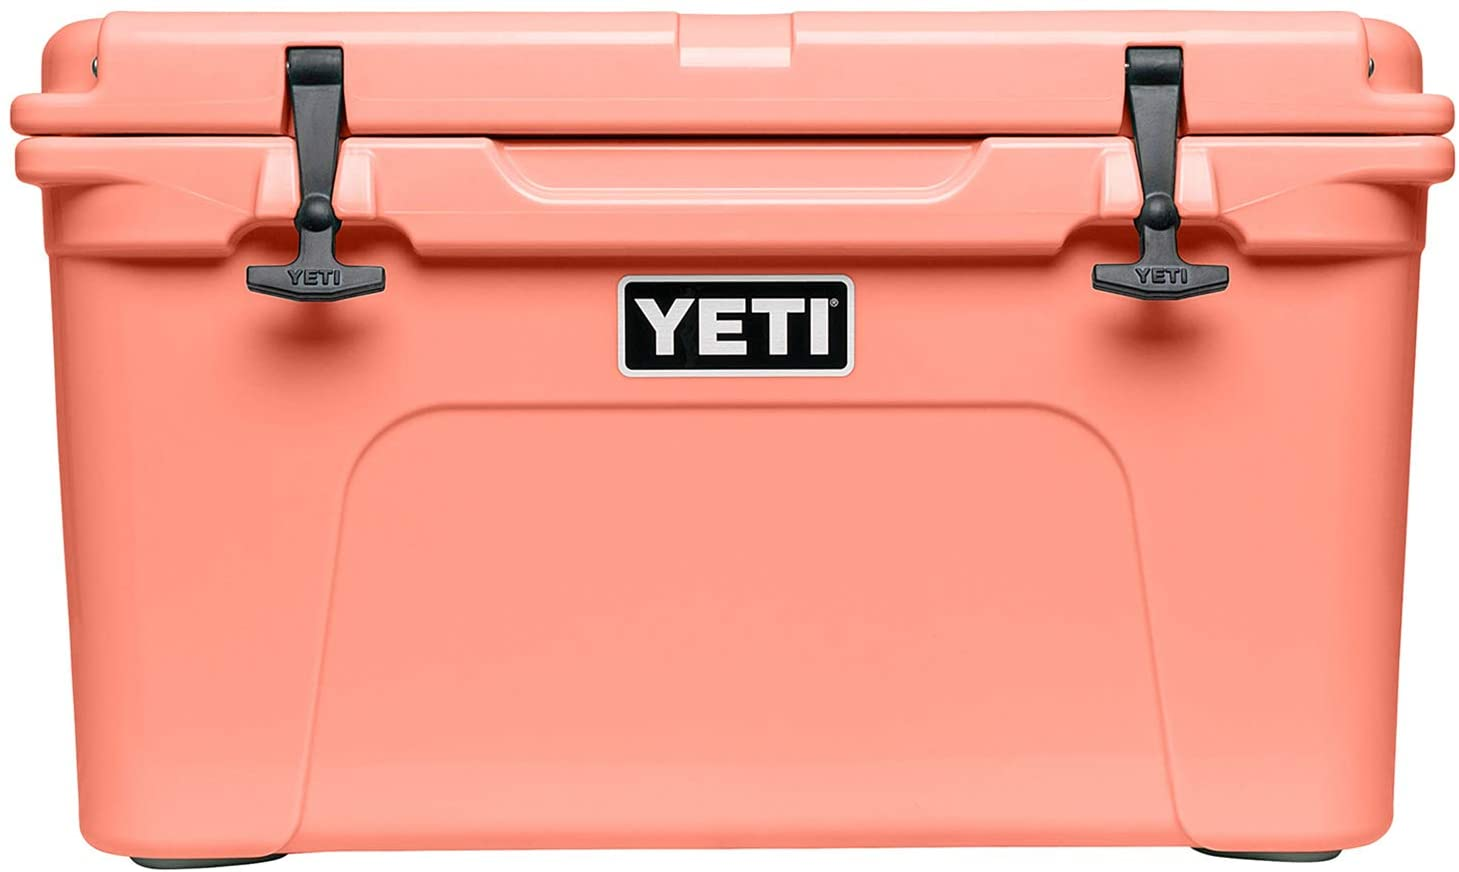 A YETI cooler on a white background.